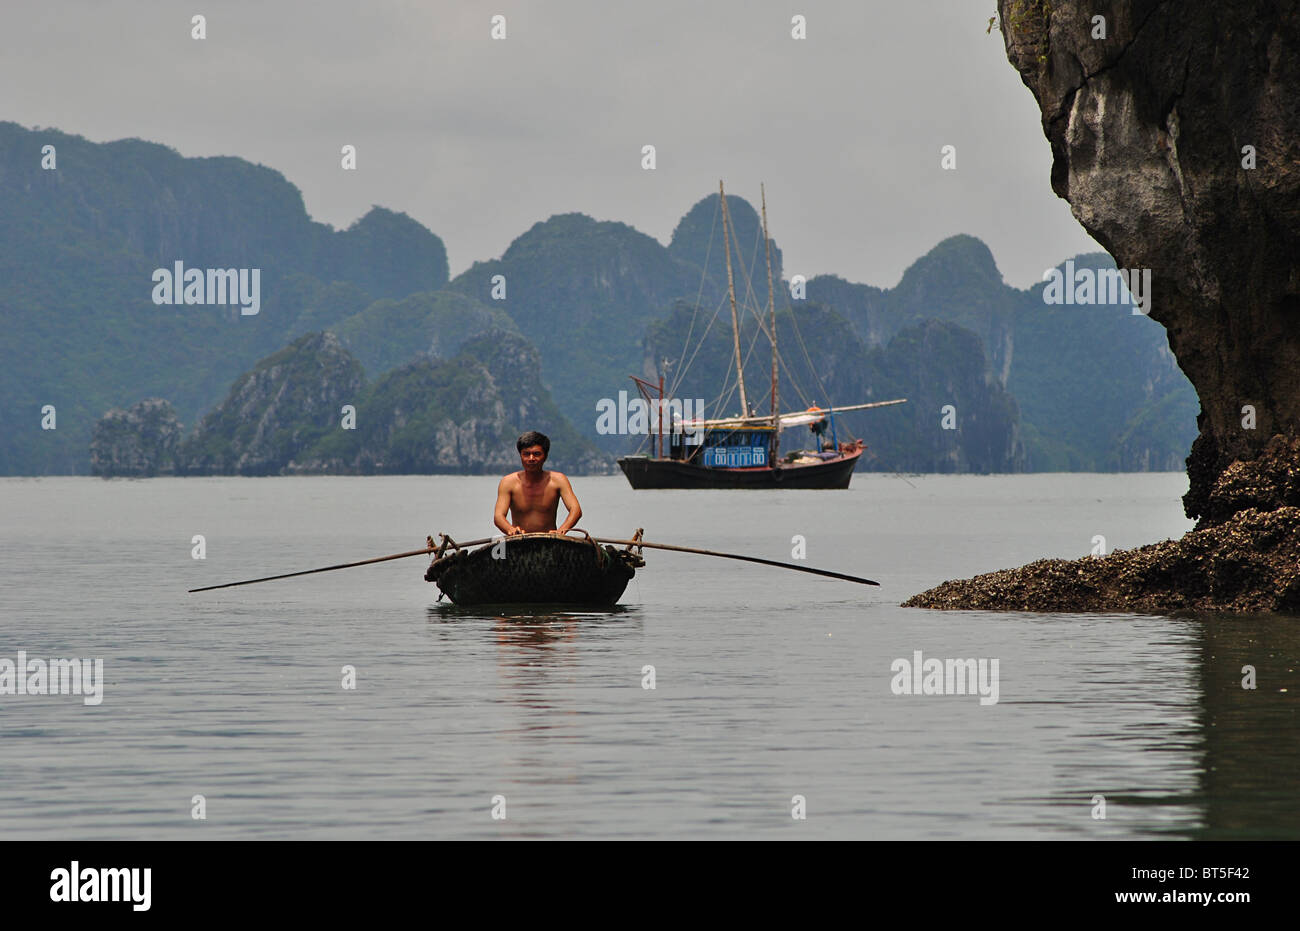 Junk and rowing boat in Halong Bay, Vietnam - Stock Image